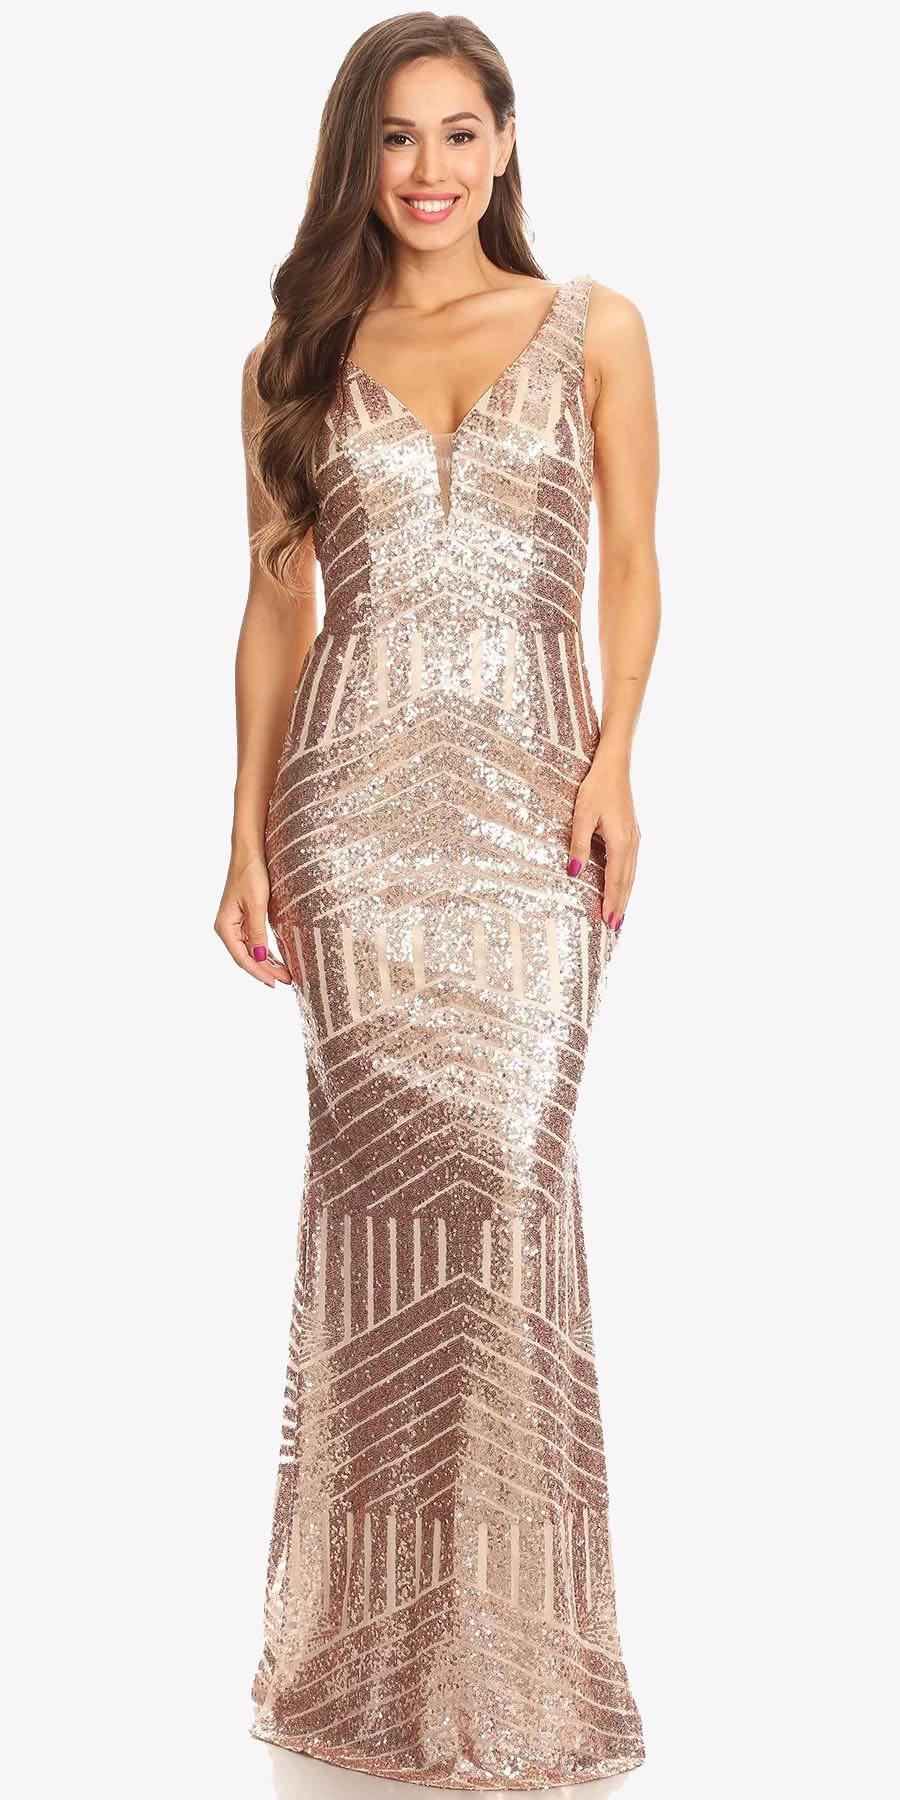 Floor Length Sequin Prom Dress V-Neck With Sheer Inset -7050